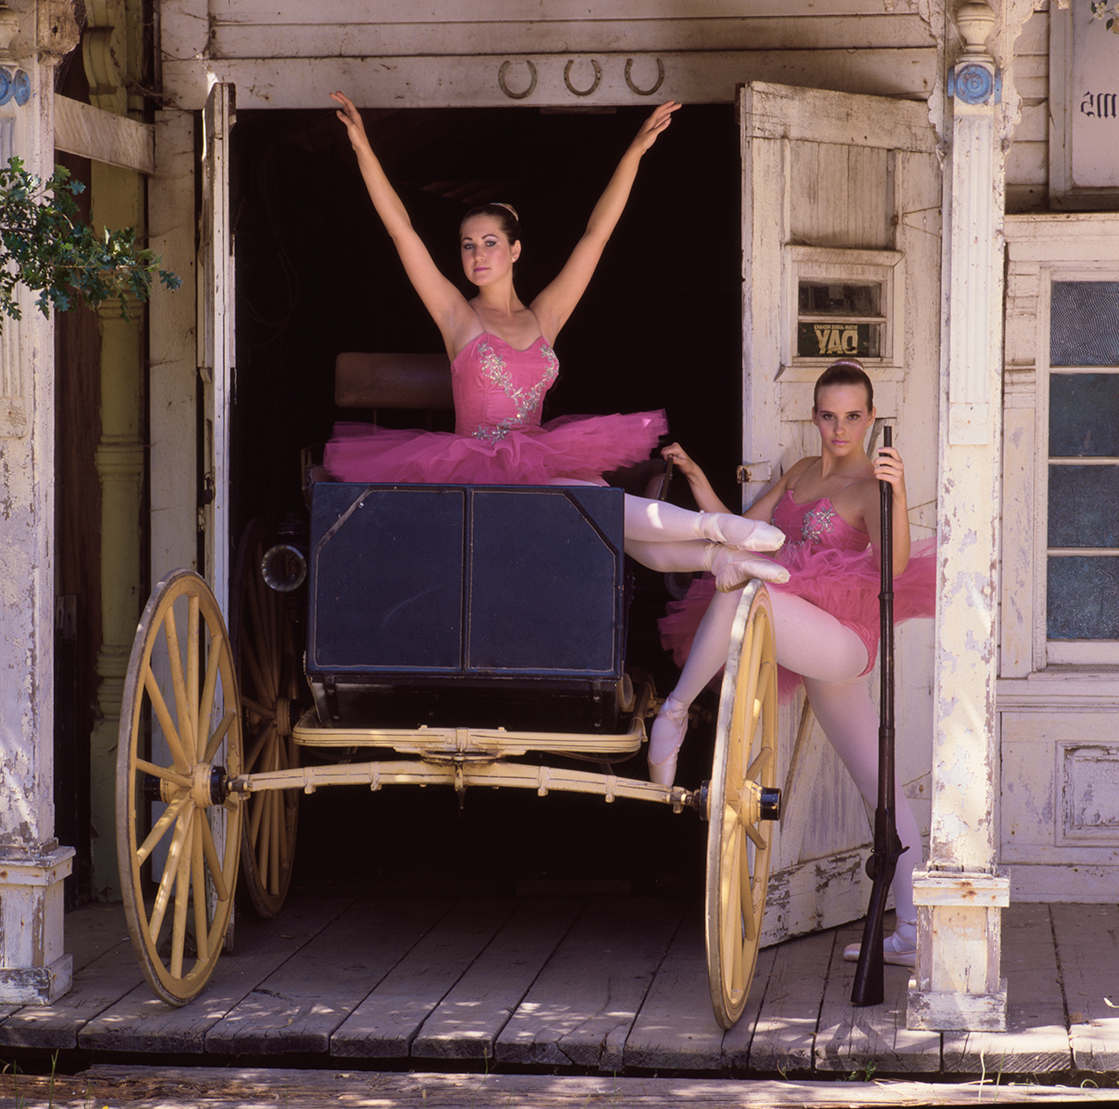 Not your traditional ballet image.